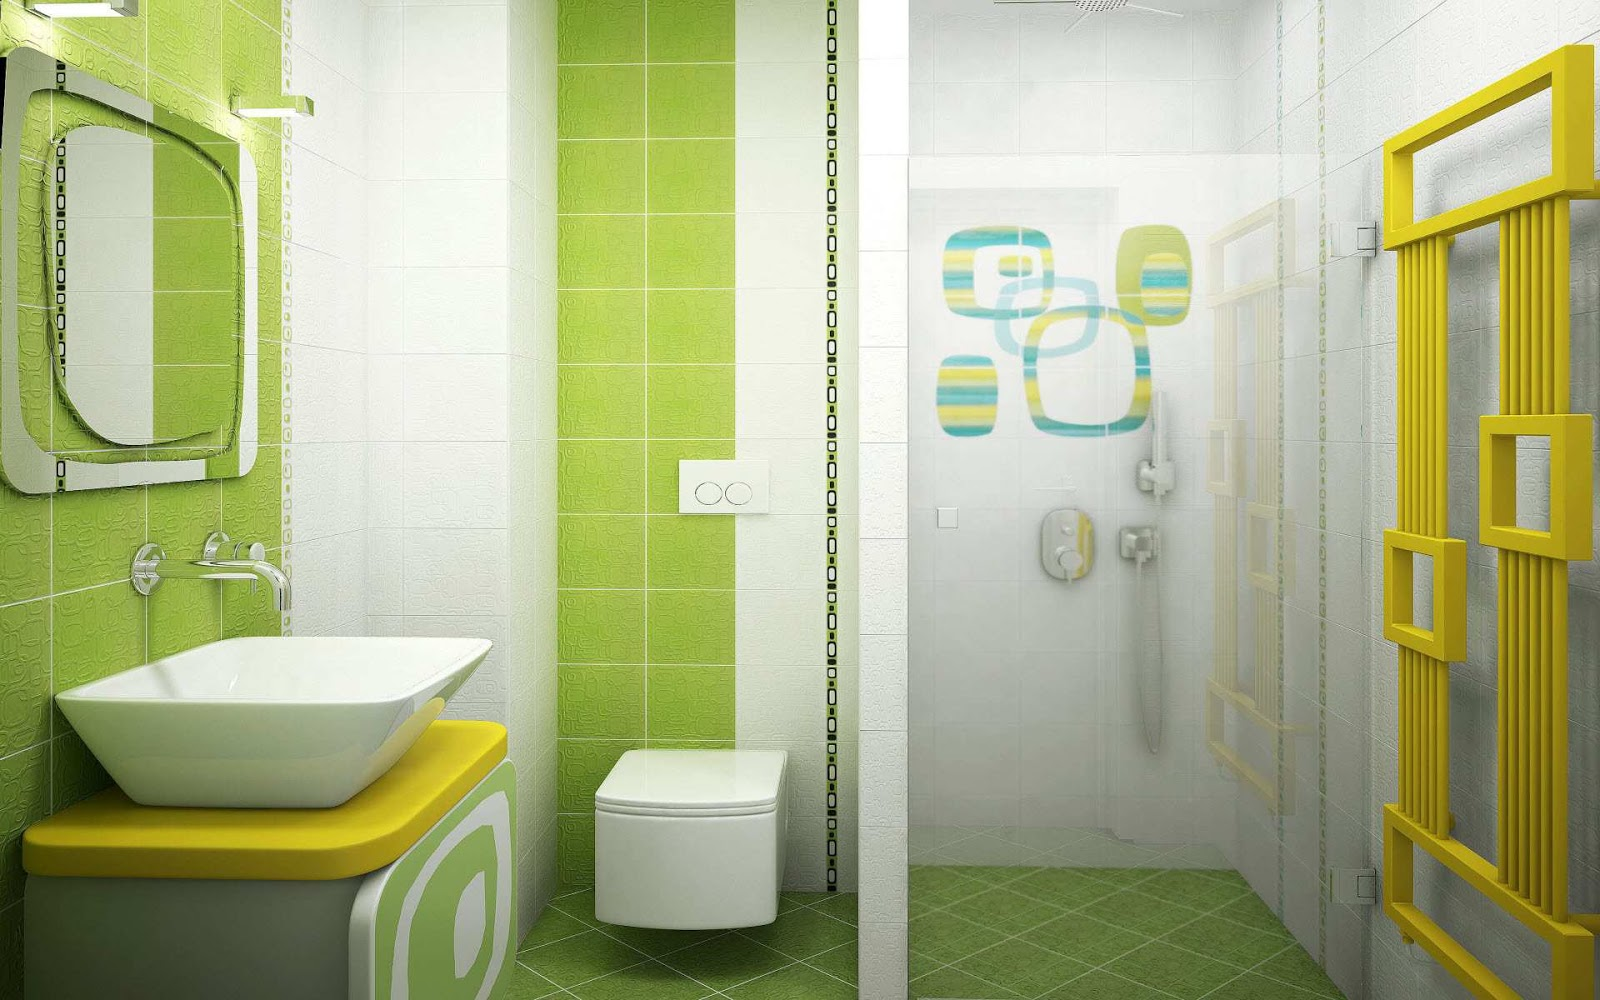 home design latest: Modern homes interiors wash rooms tiles designs ...